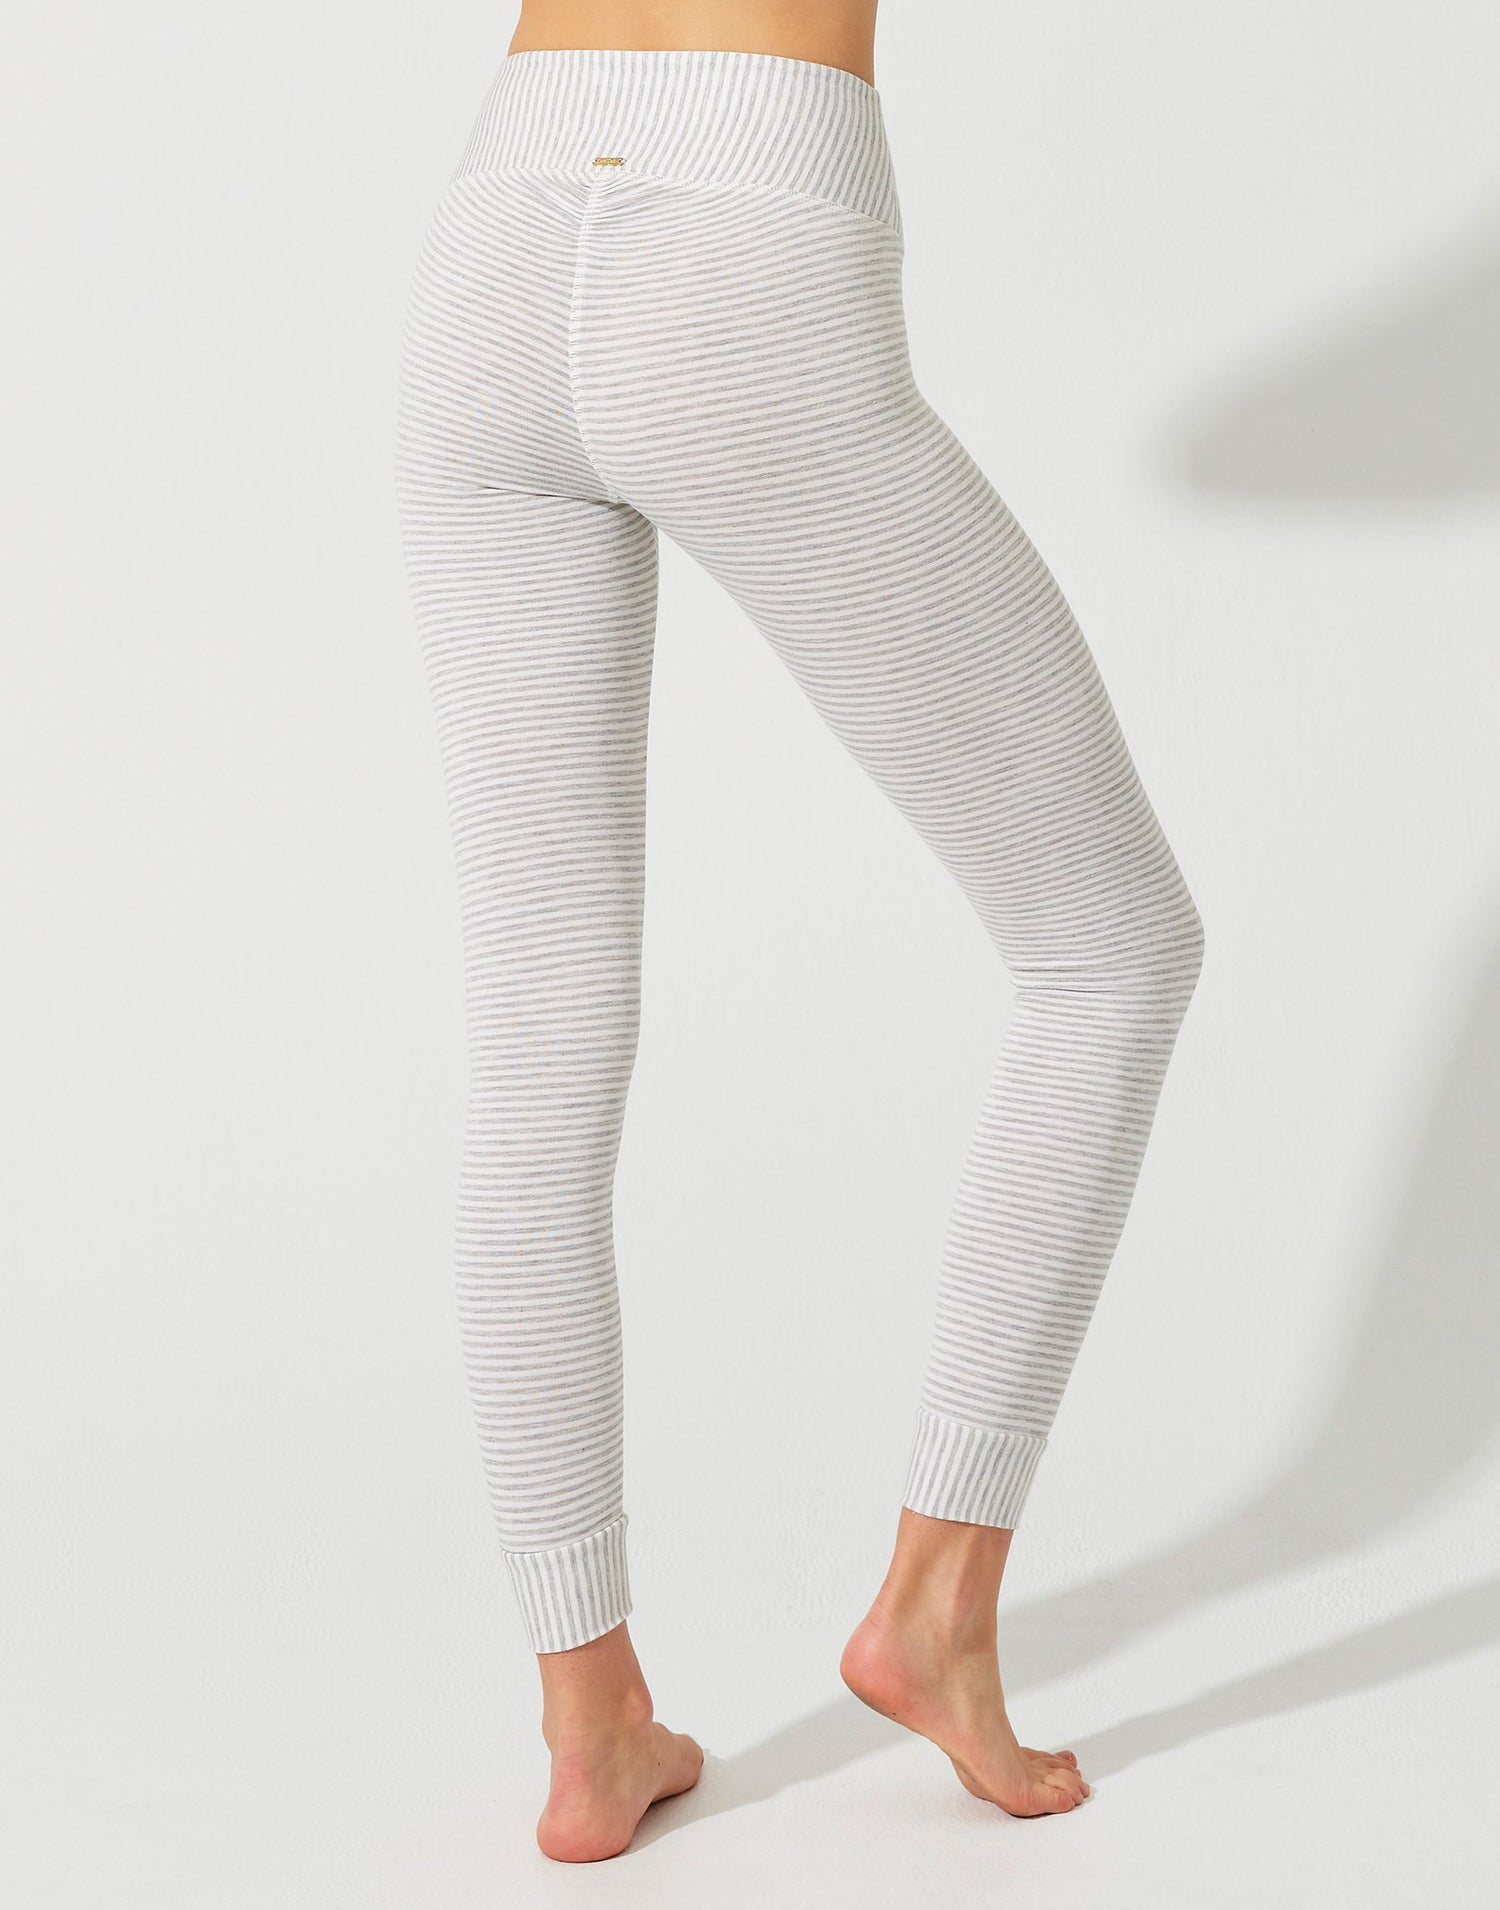 Cameron High Waist Legging in Grey/Cream - close up view